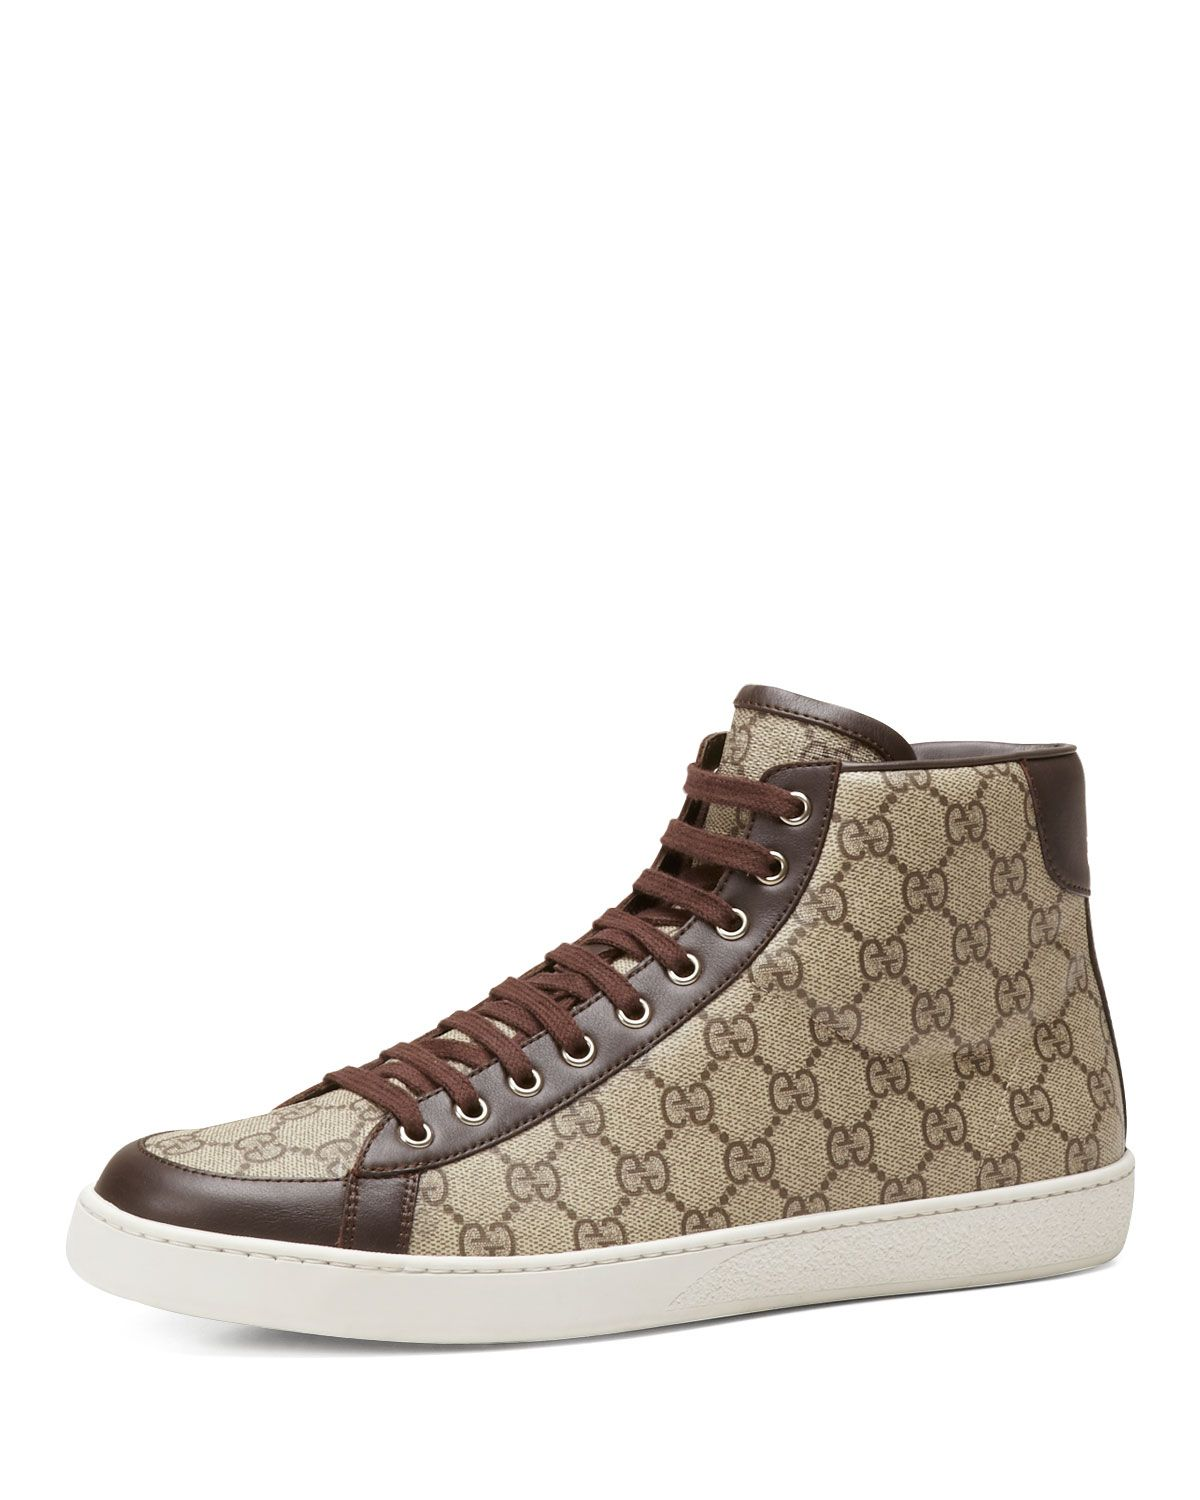 696eb0b890c Gucci Brooklyn GG Supreme Fabric High-Top Sneaker